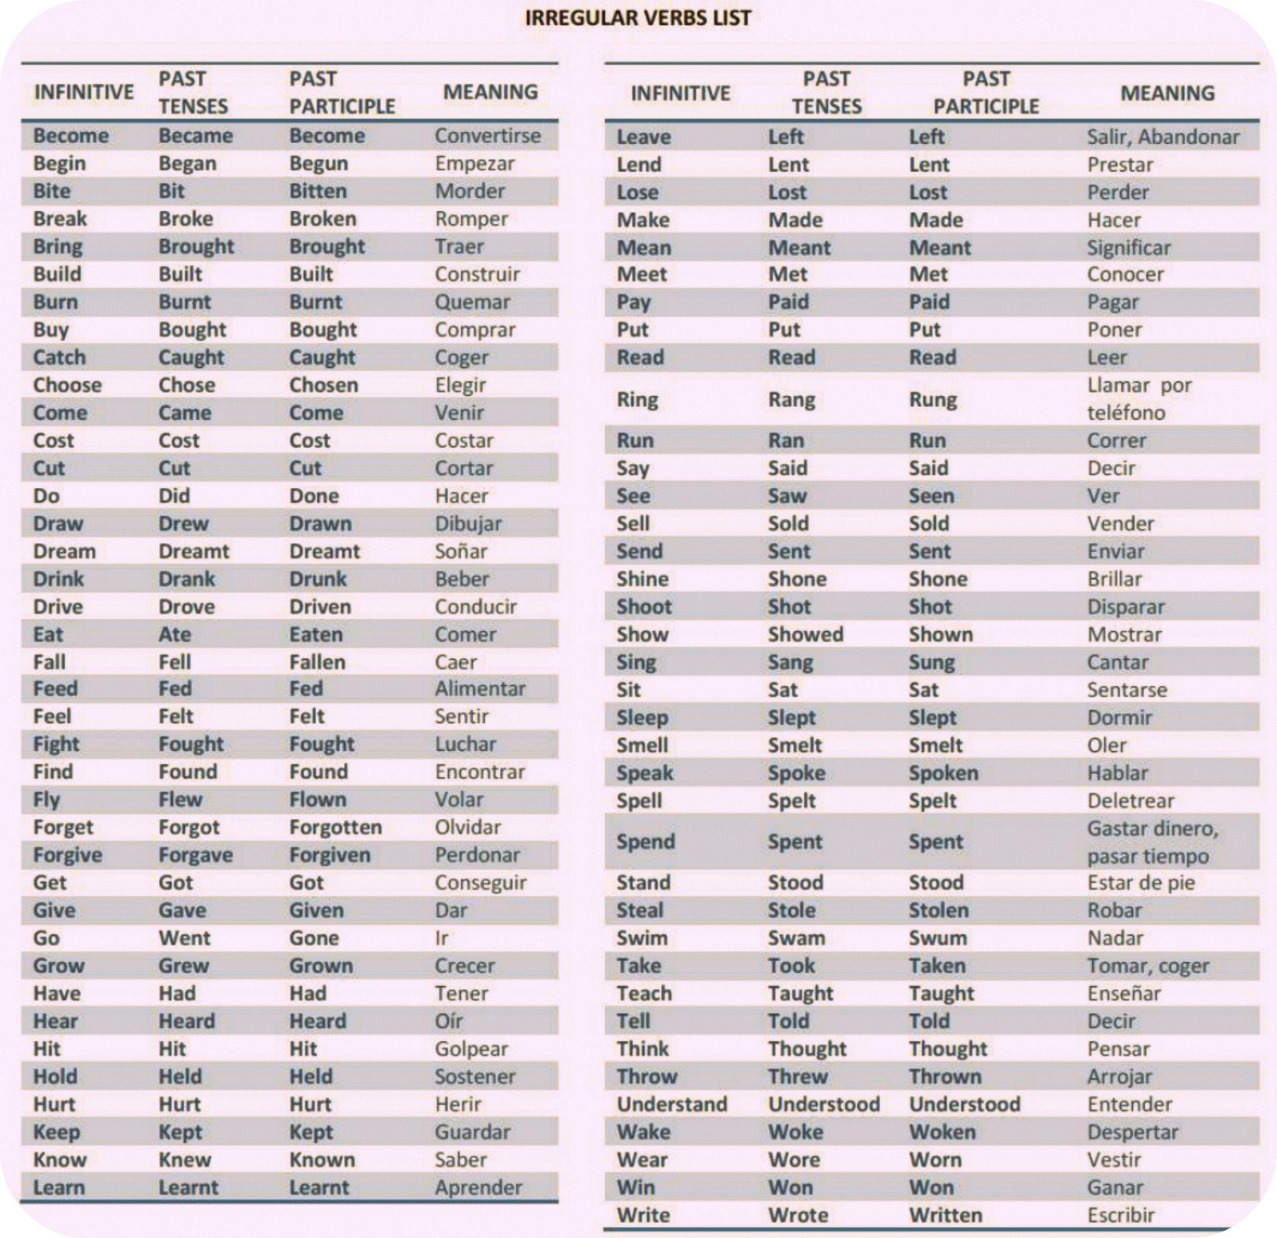 Rules To Form The Simple Past To Regular And Irregular Verbs